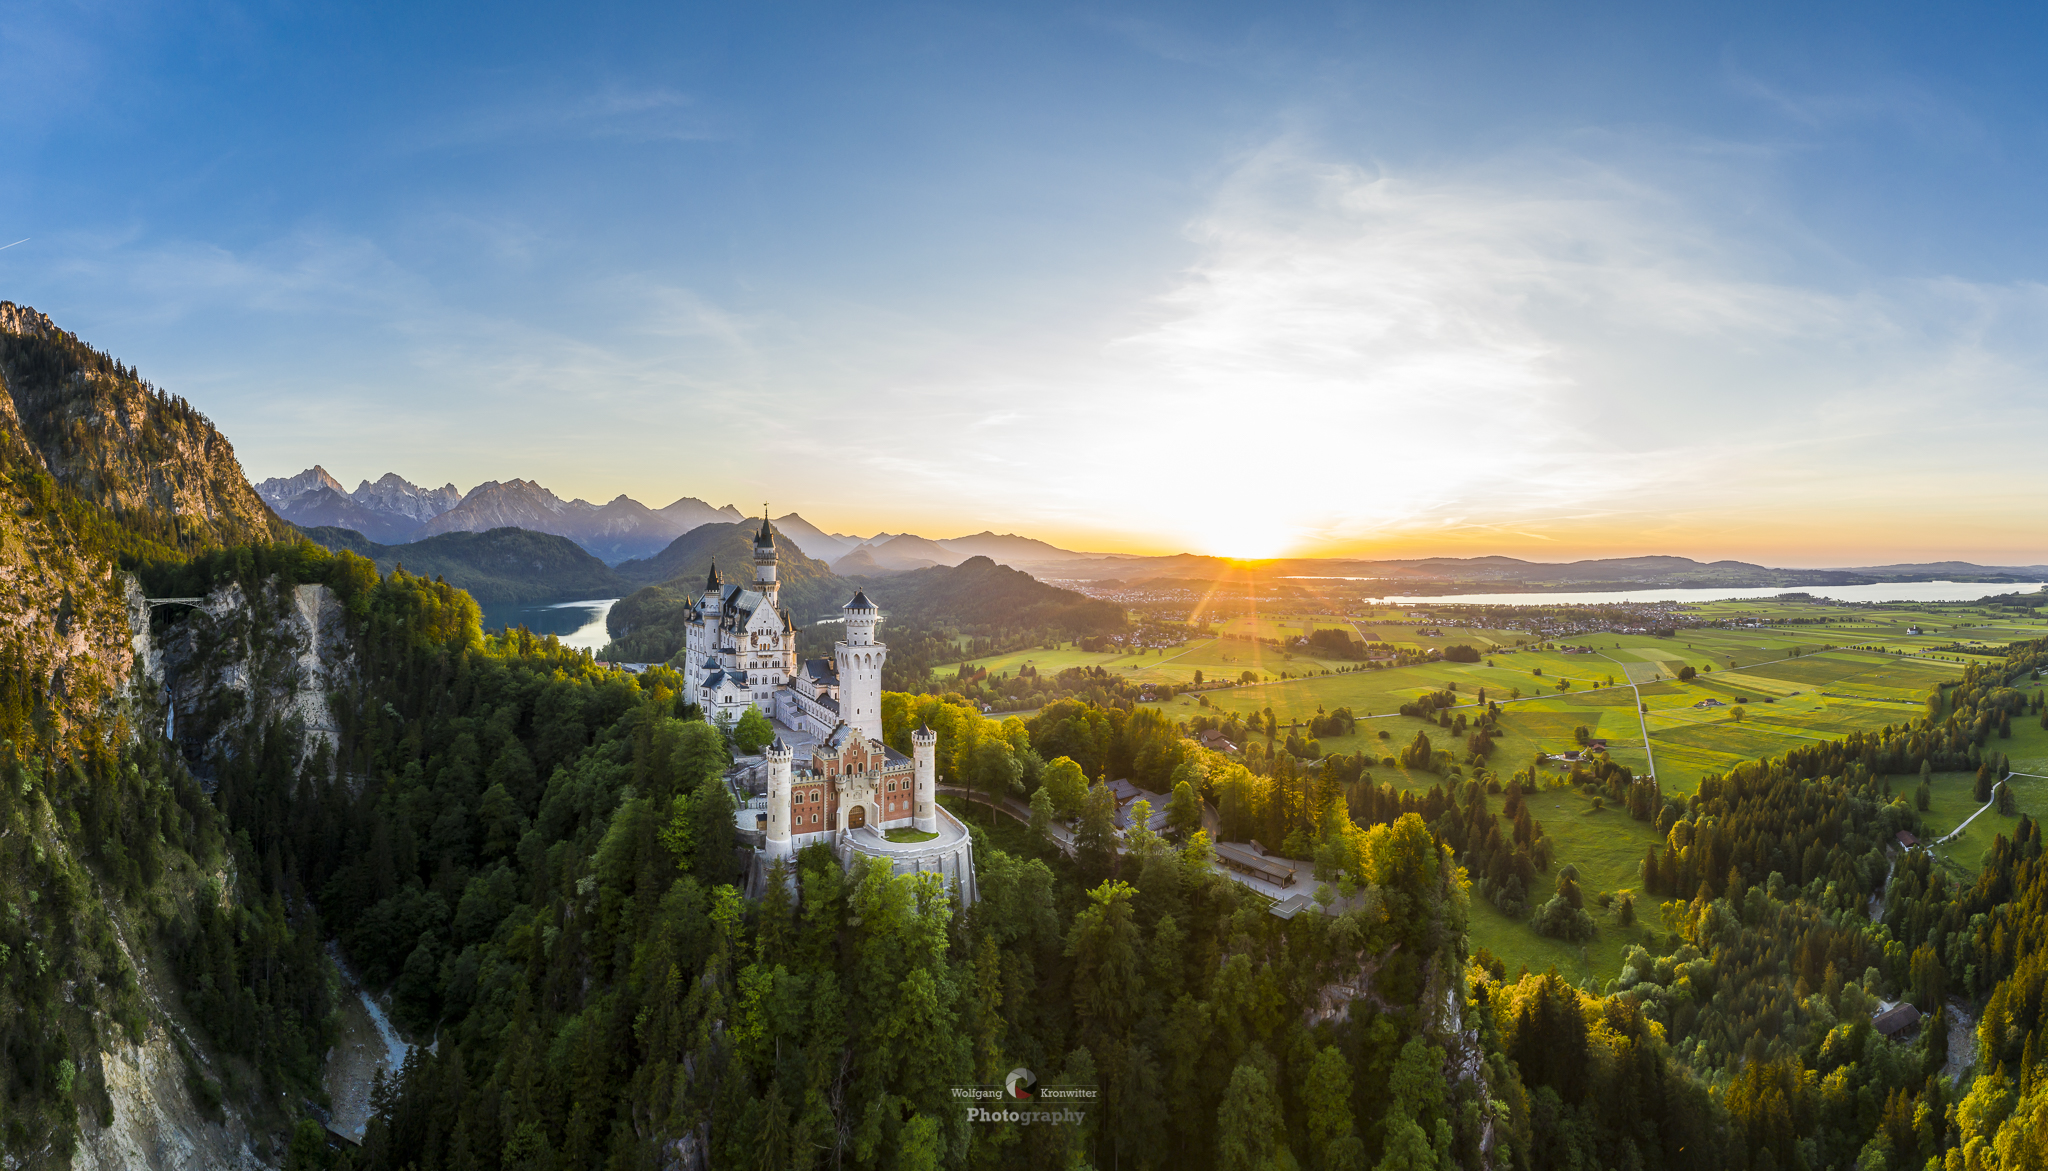 Schloß Neuschwanstein, Germany